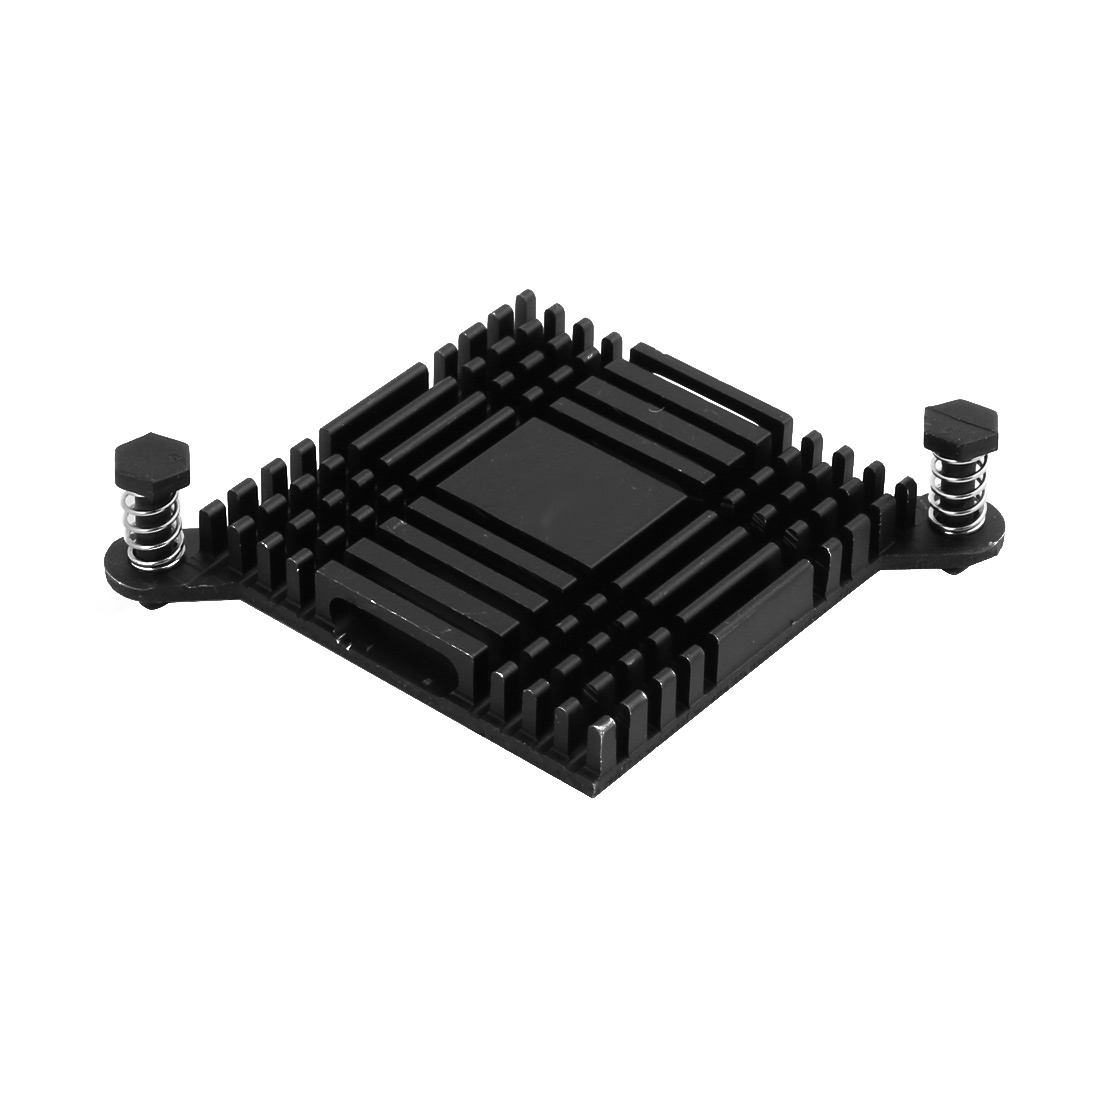 38mmx38mmx6mm Black Aluminum Heatsink Heat Diffuse Cooling Fin